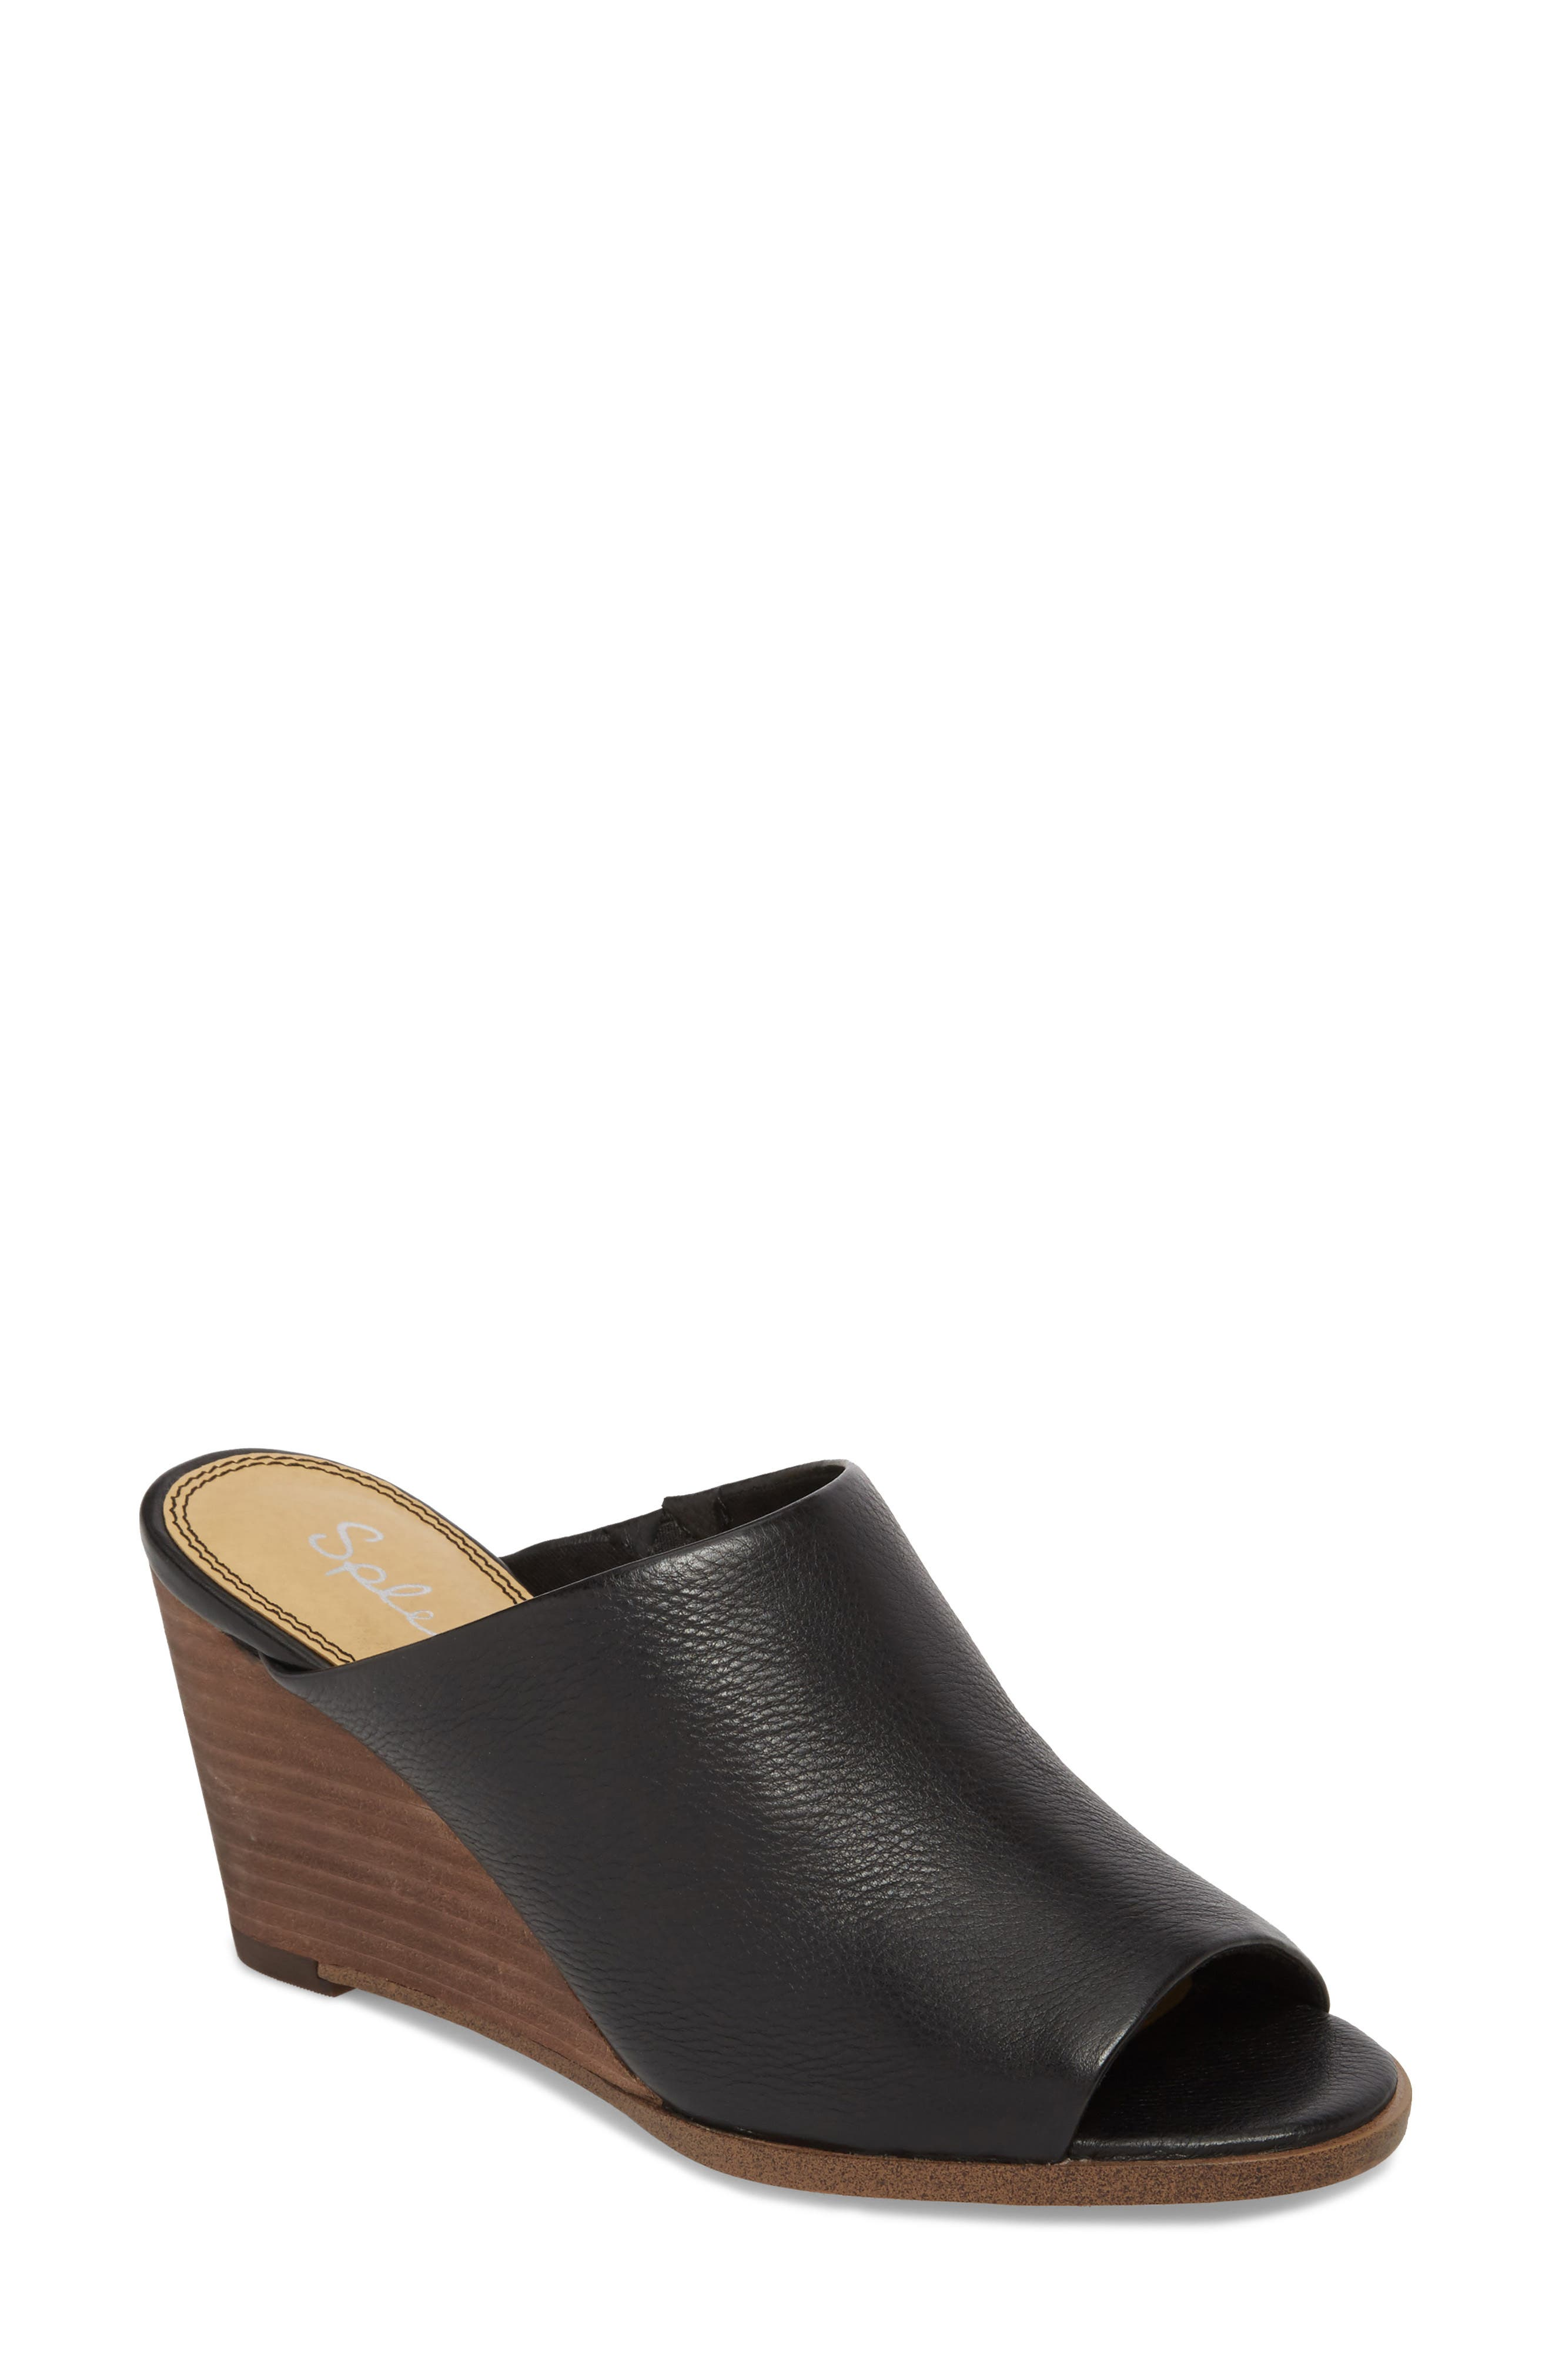 Fenwick Wedge Sandal,                         Main,                         color, BLACK LEATHER